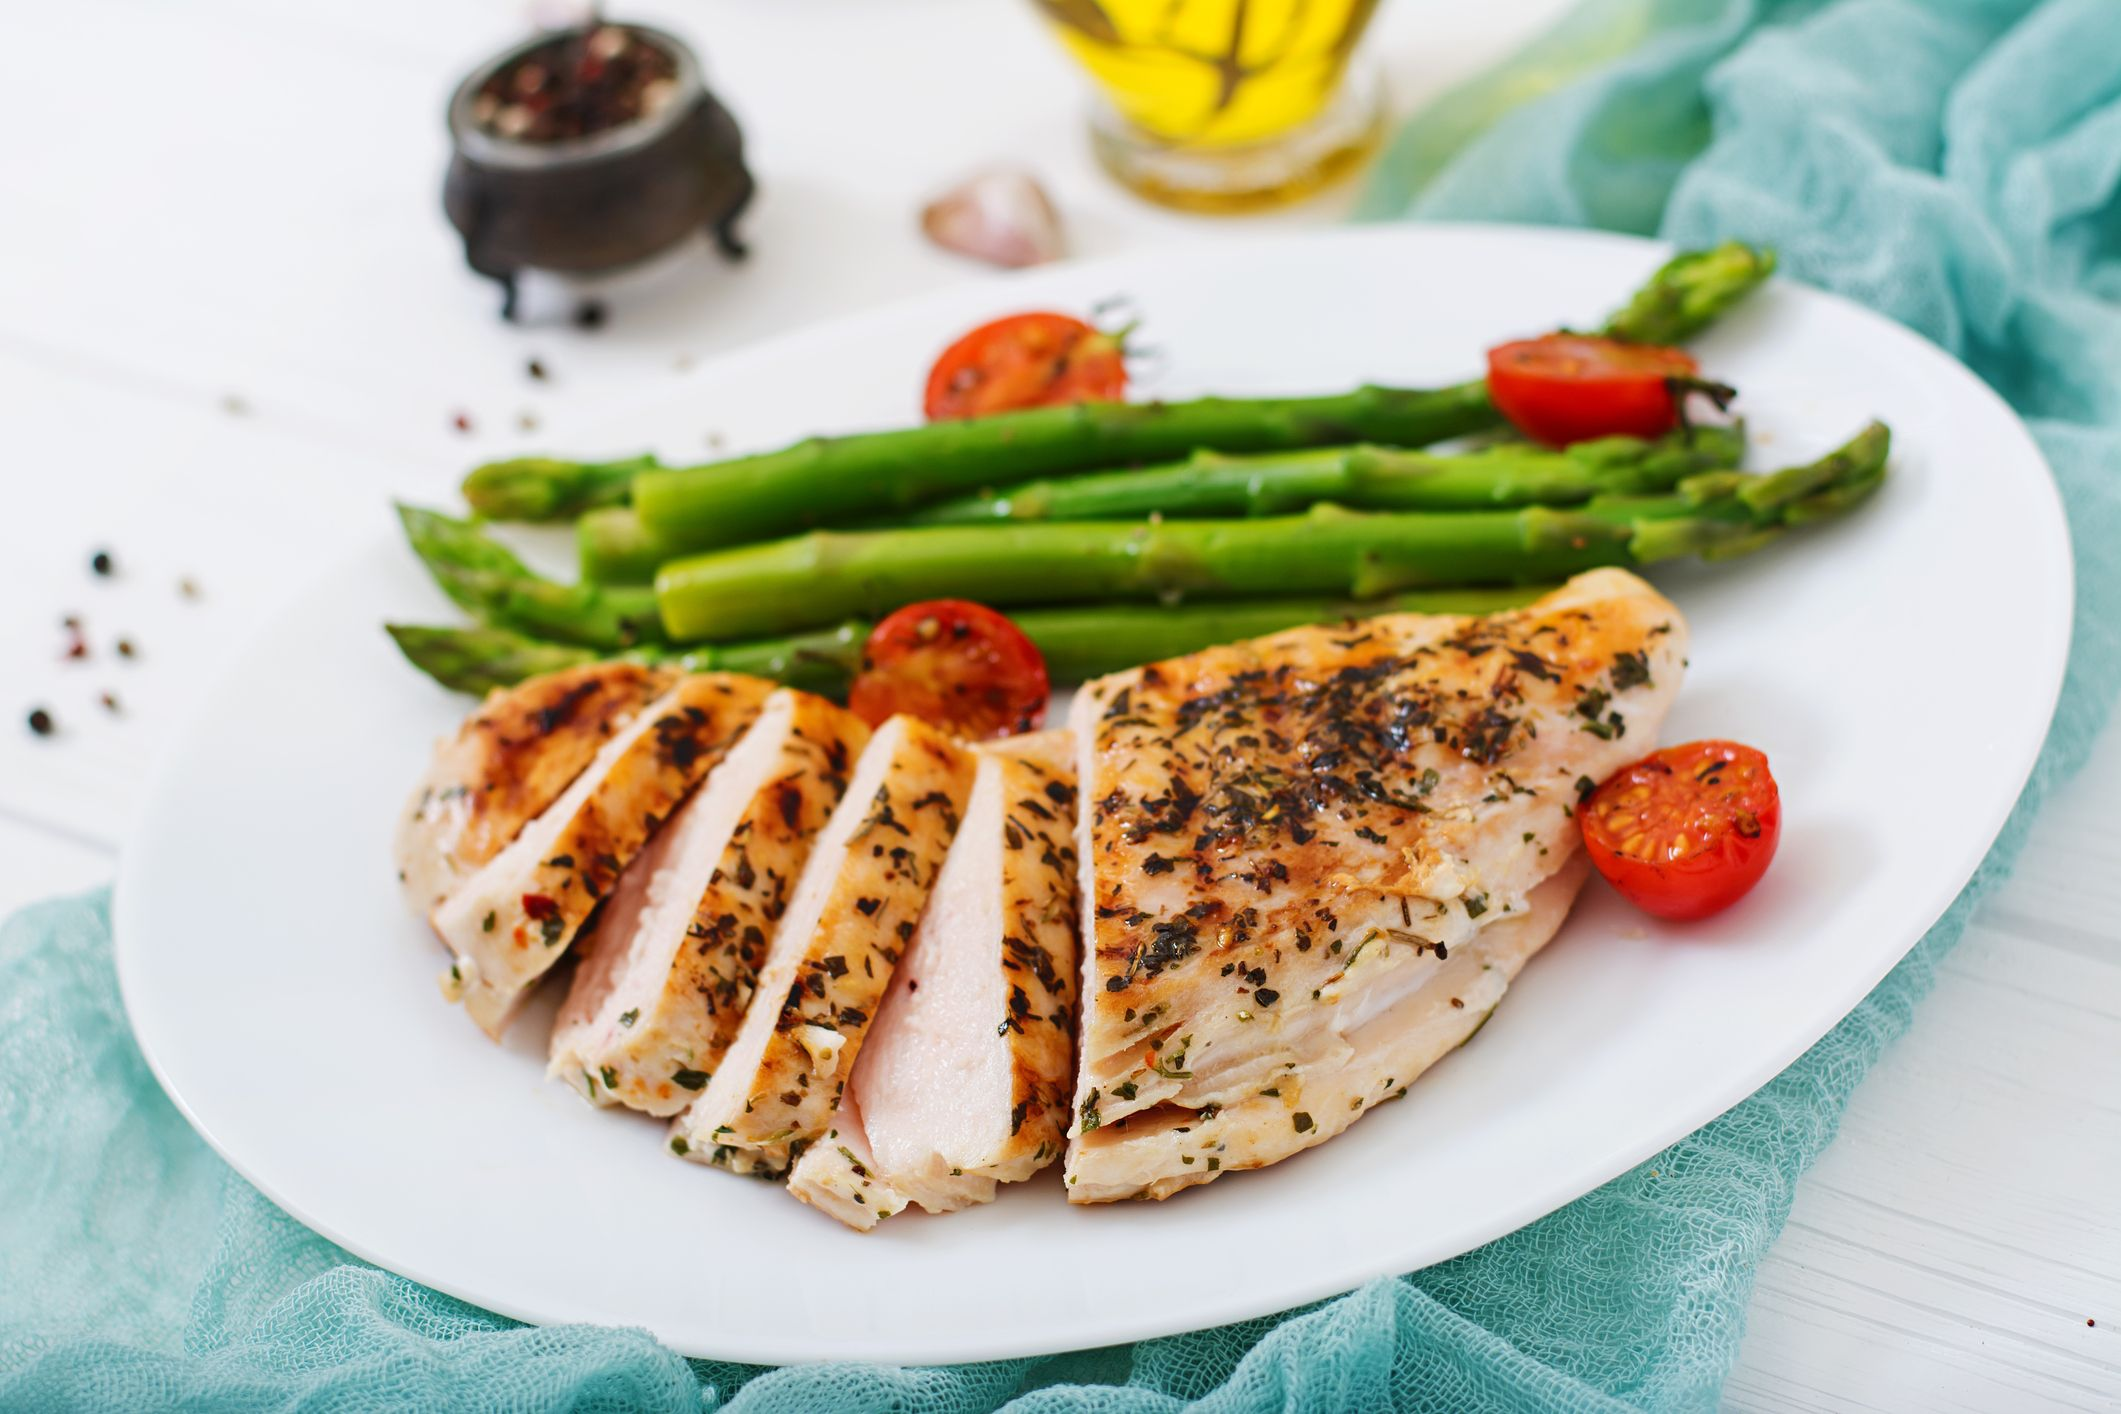 Caloric content of chicken breasts depending on the way they are cooked